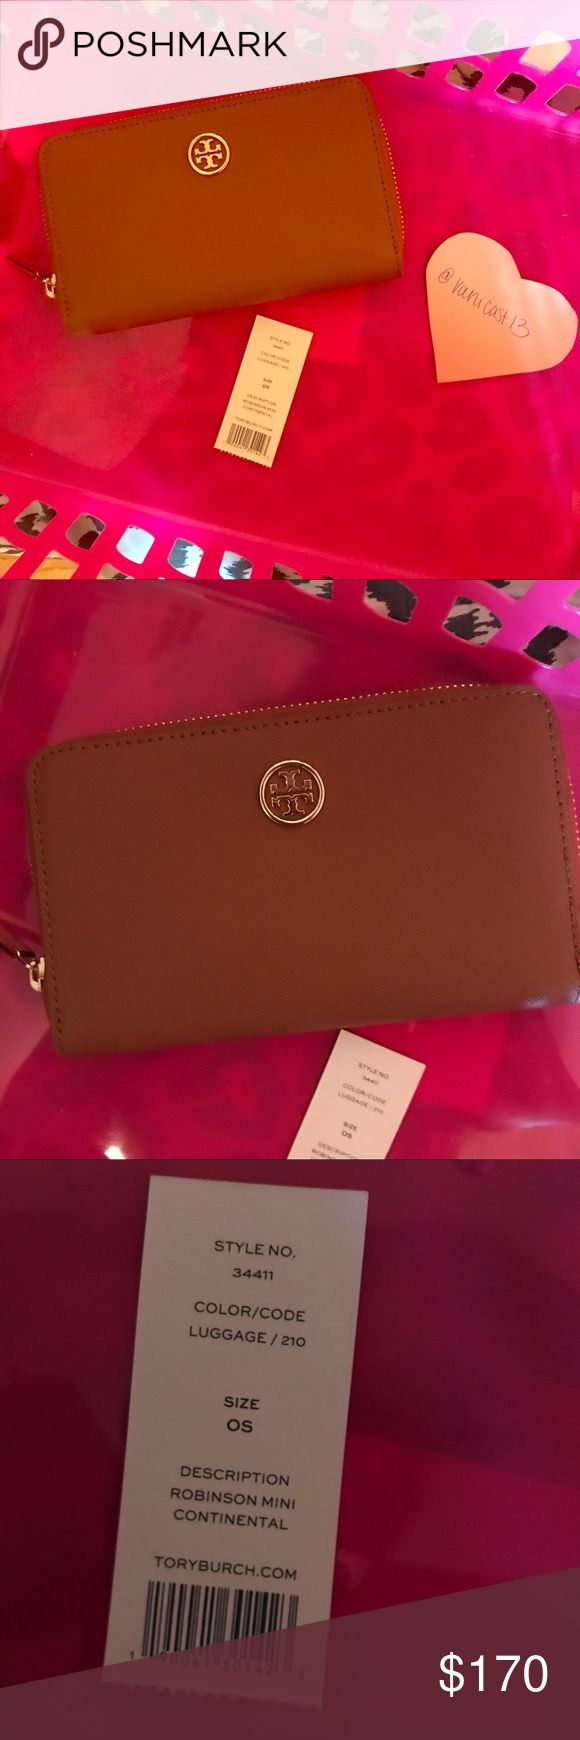 Tory burch continental wallet Brand new. Authentic. Color is luggage. Tory Burch Bags Wallets